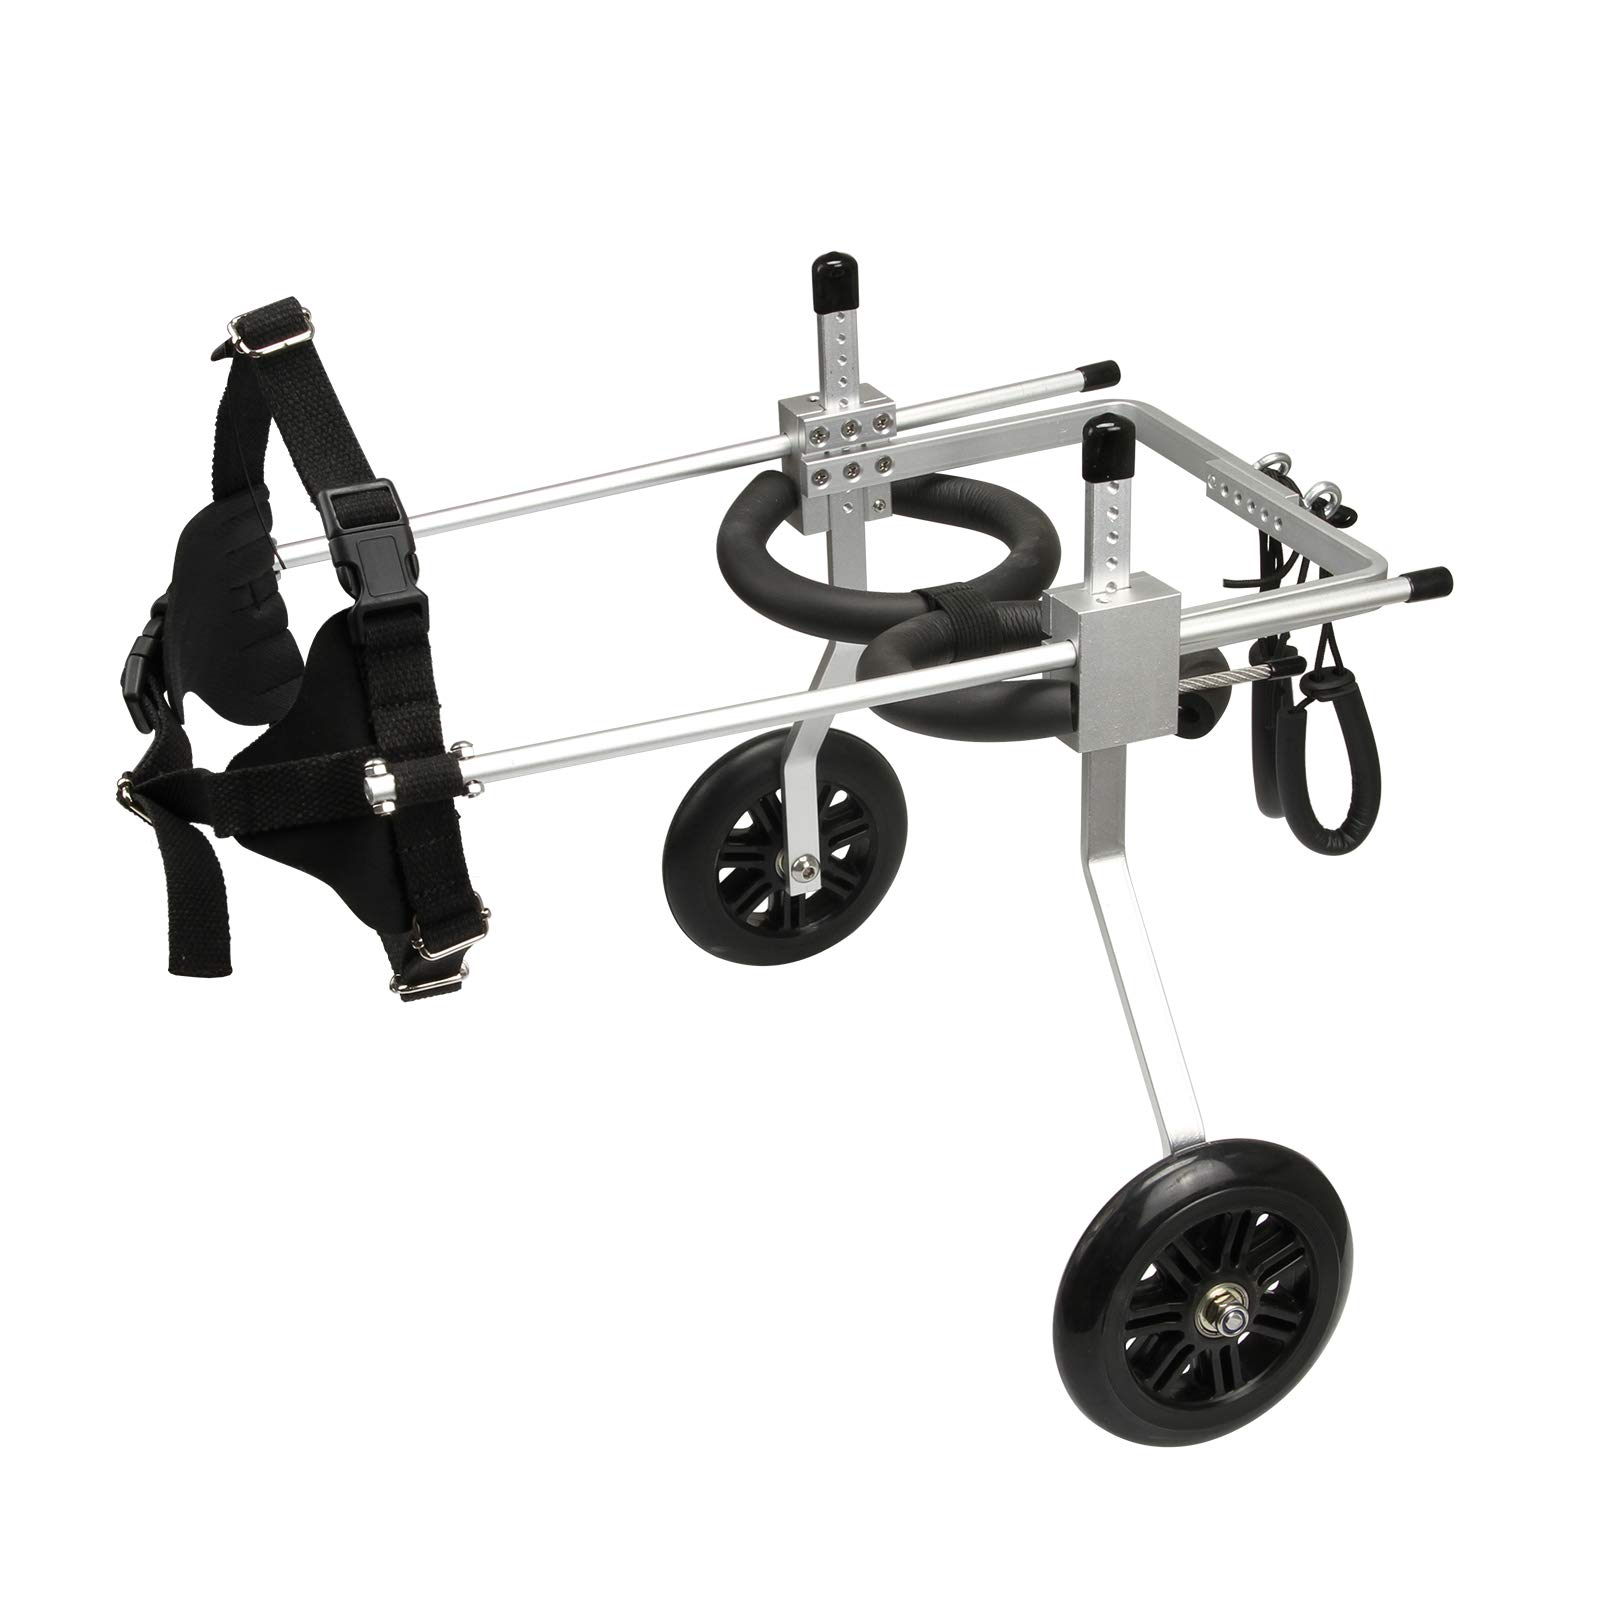 Anmas Home Adjustable Pet Dog Wheelchair for Back Leg Rehabilitaion by Anmas Home